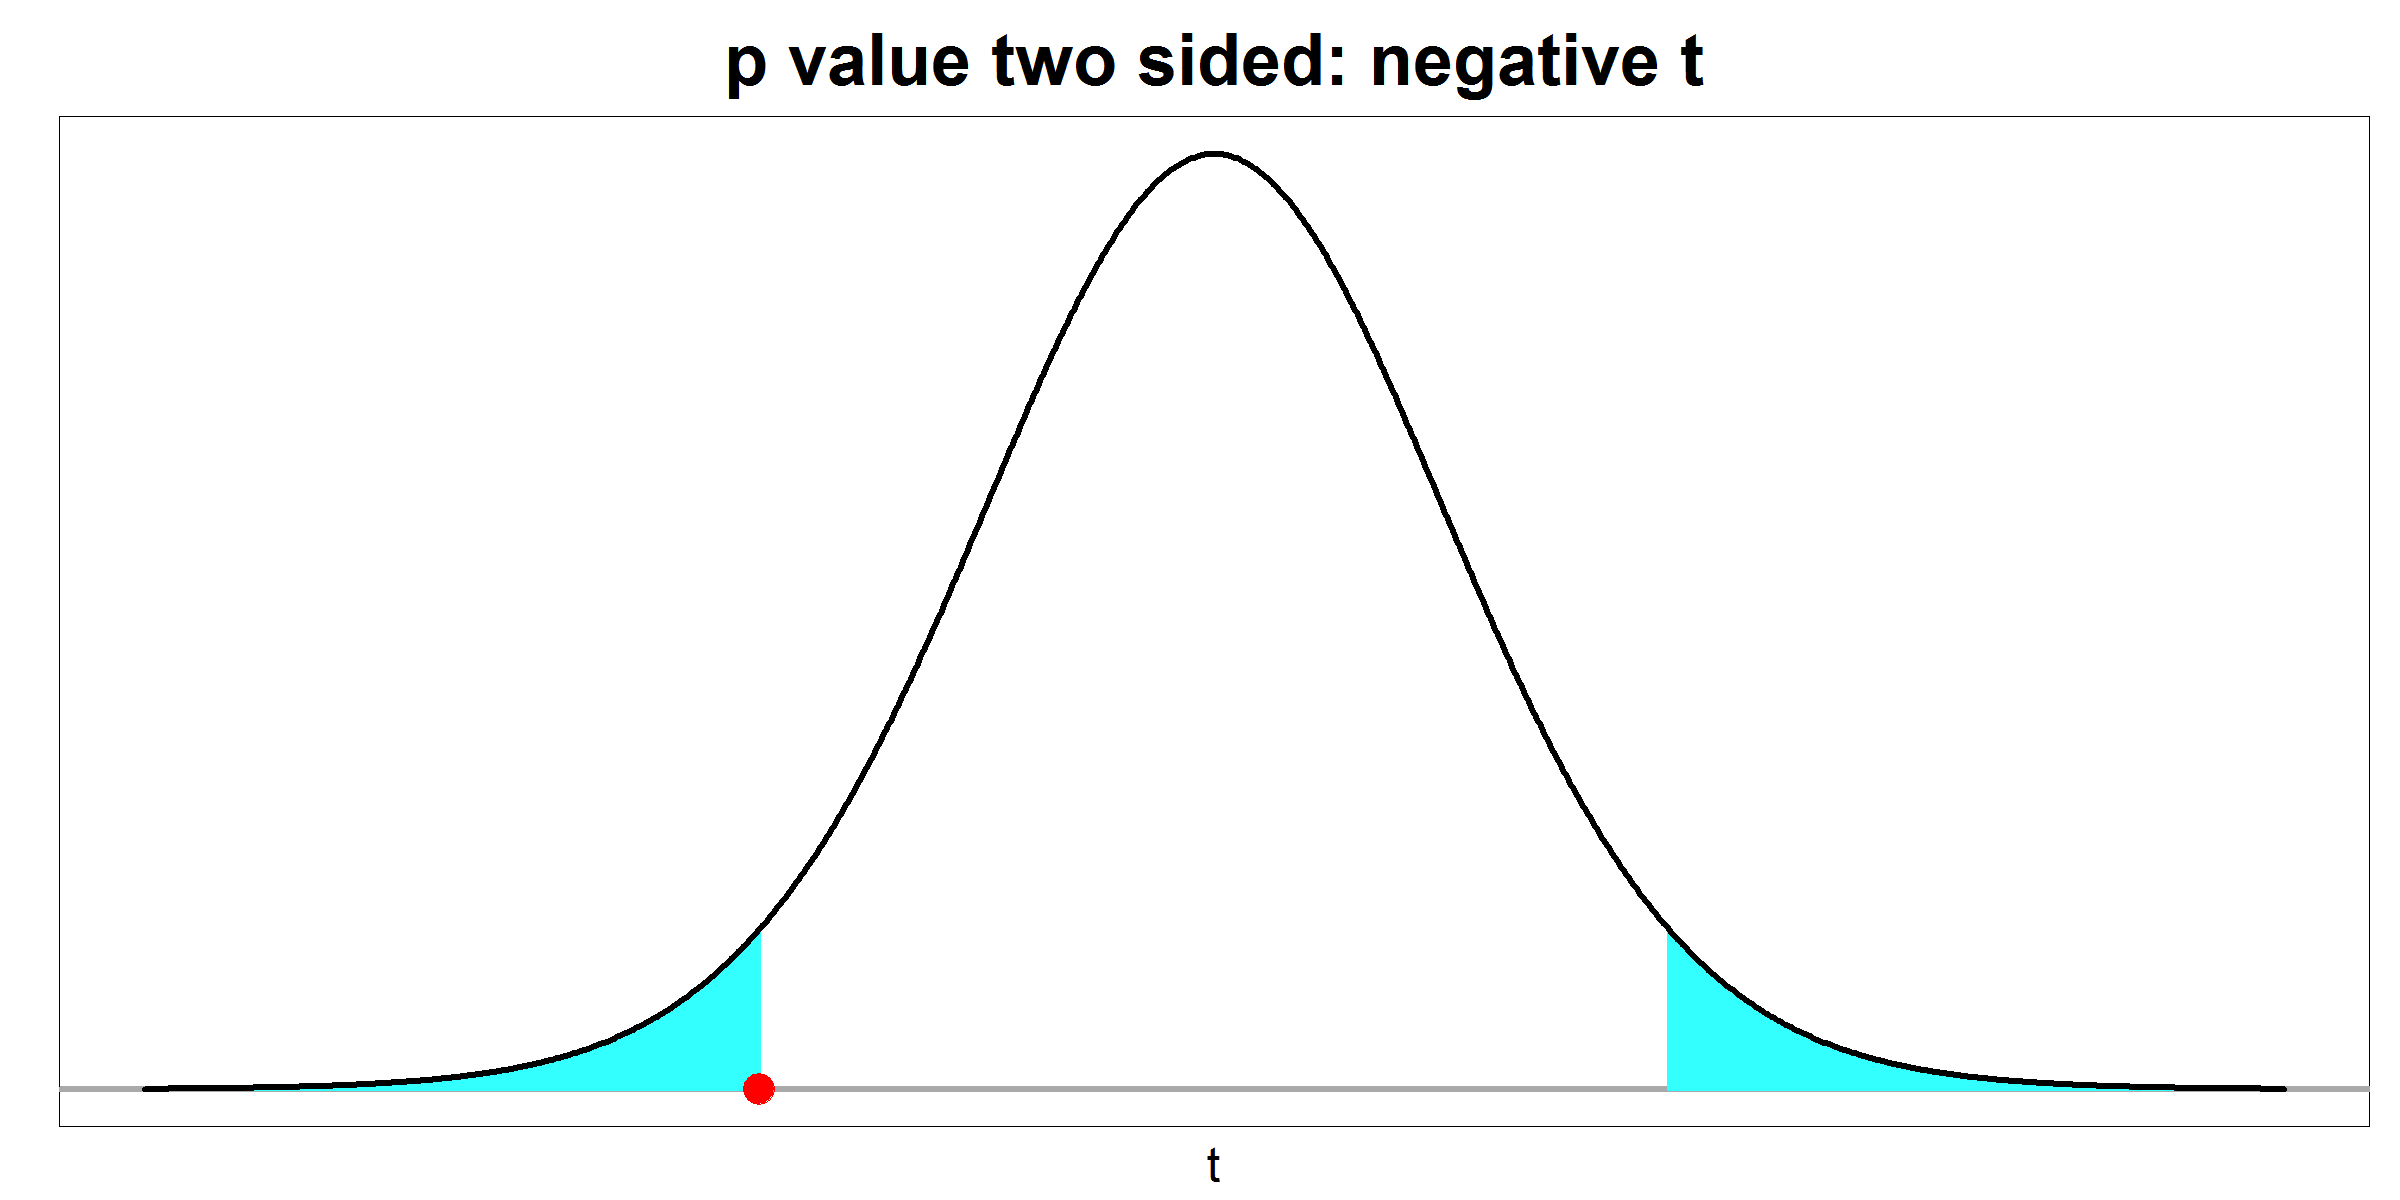 p value - two sided - negative t